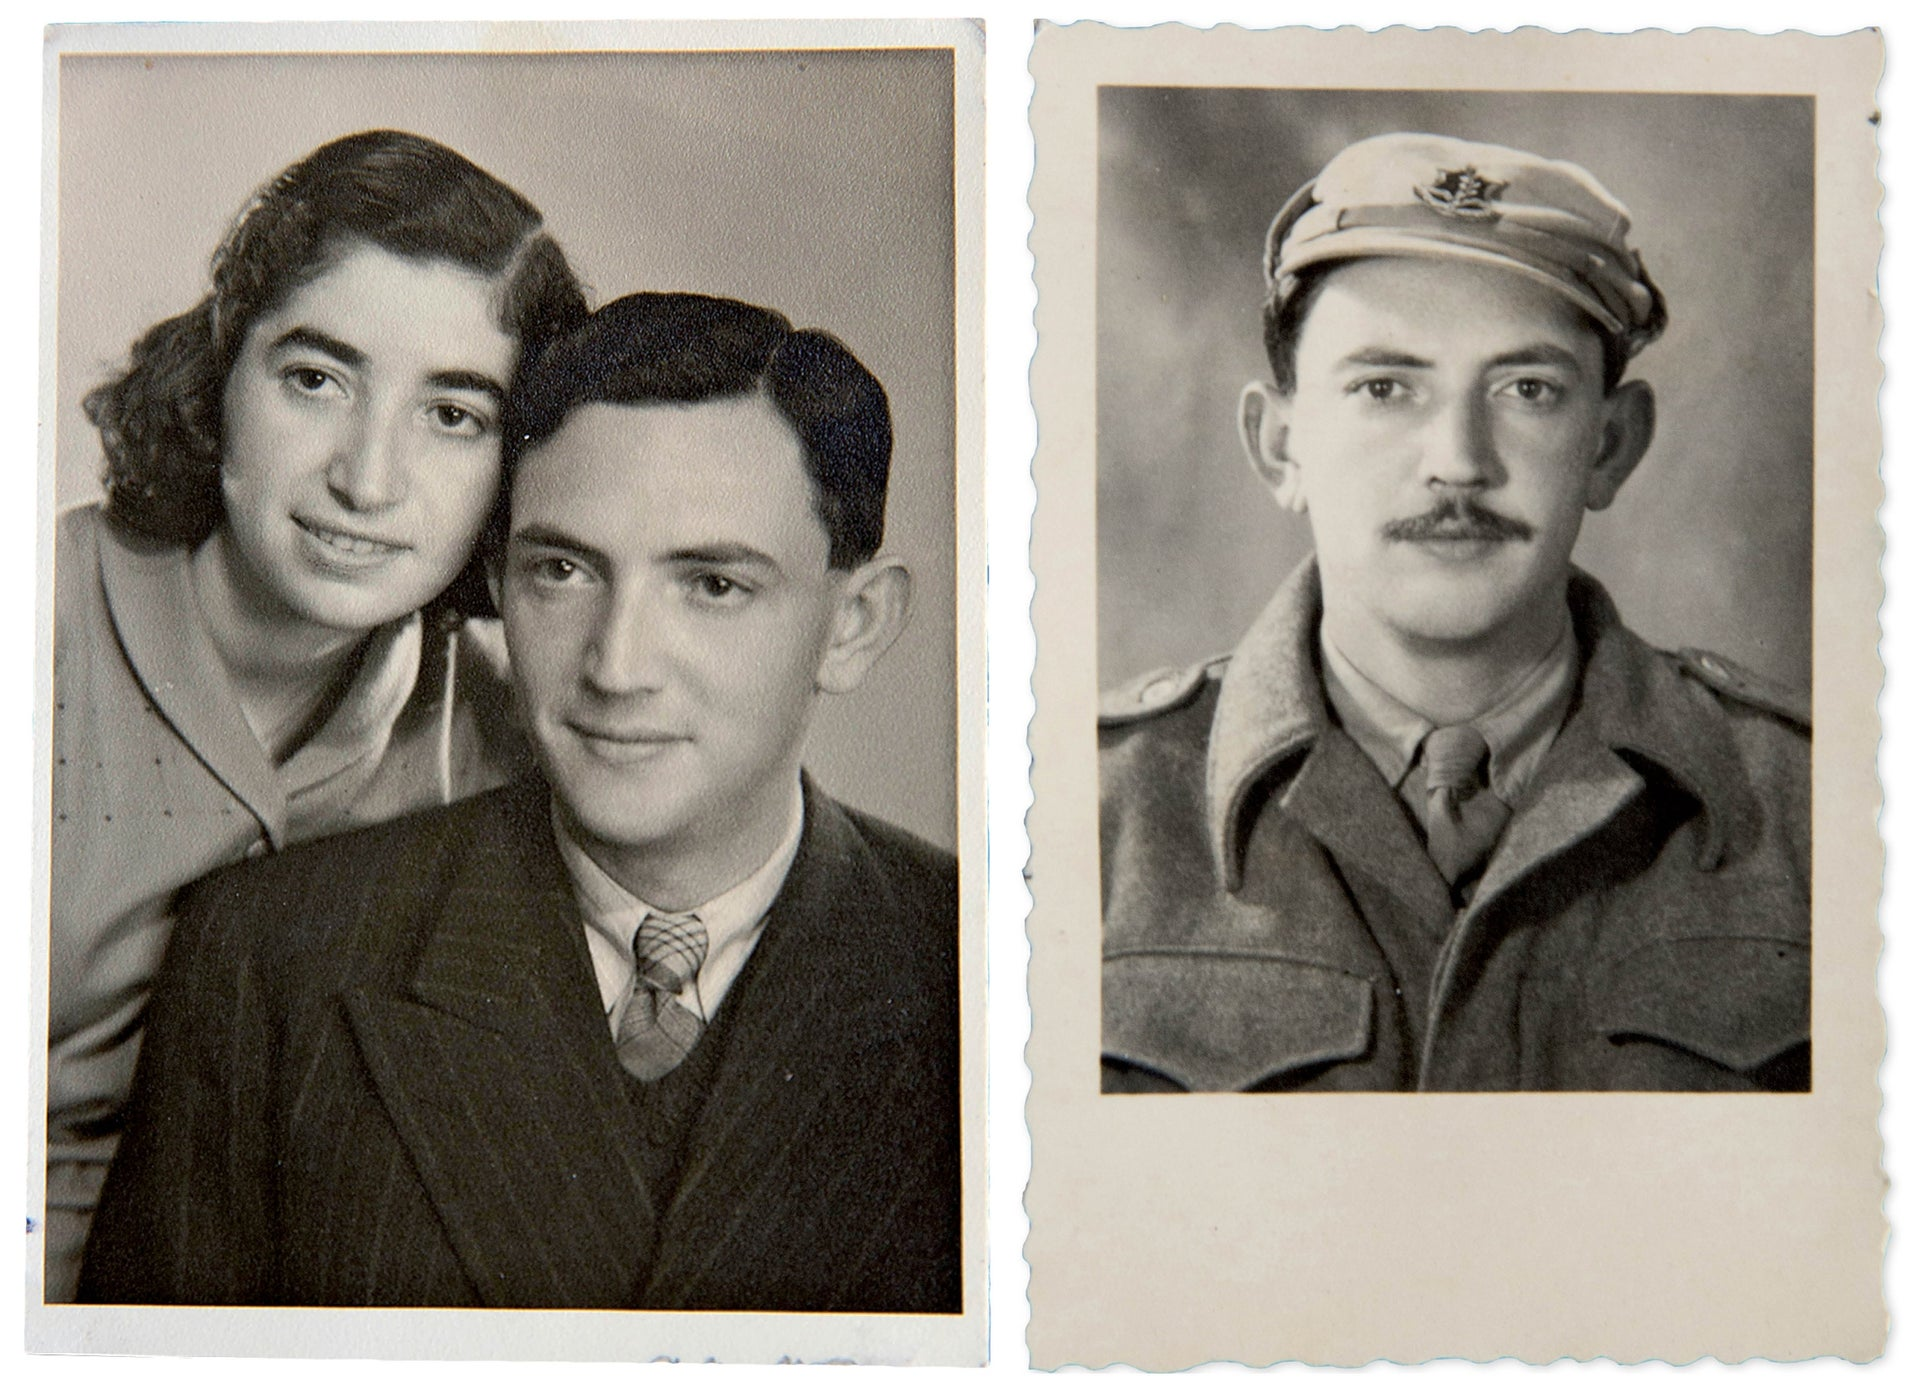 Blau with his wife, on the left, and during his military service.